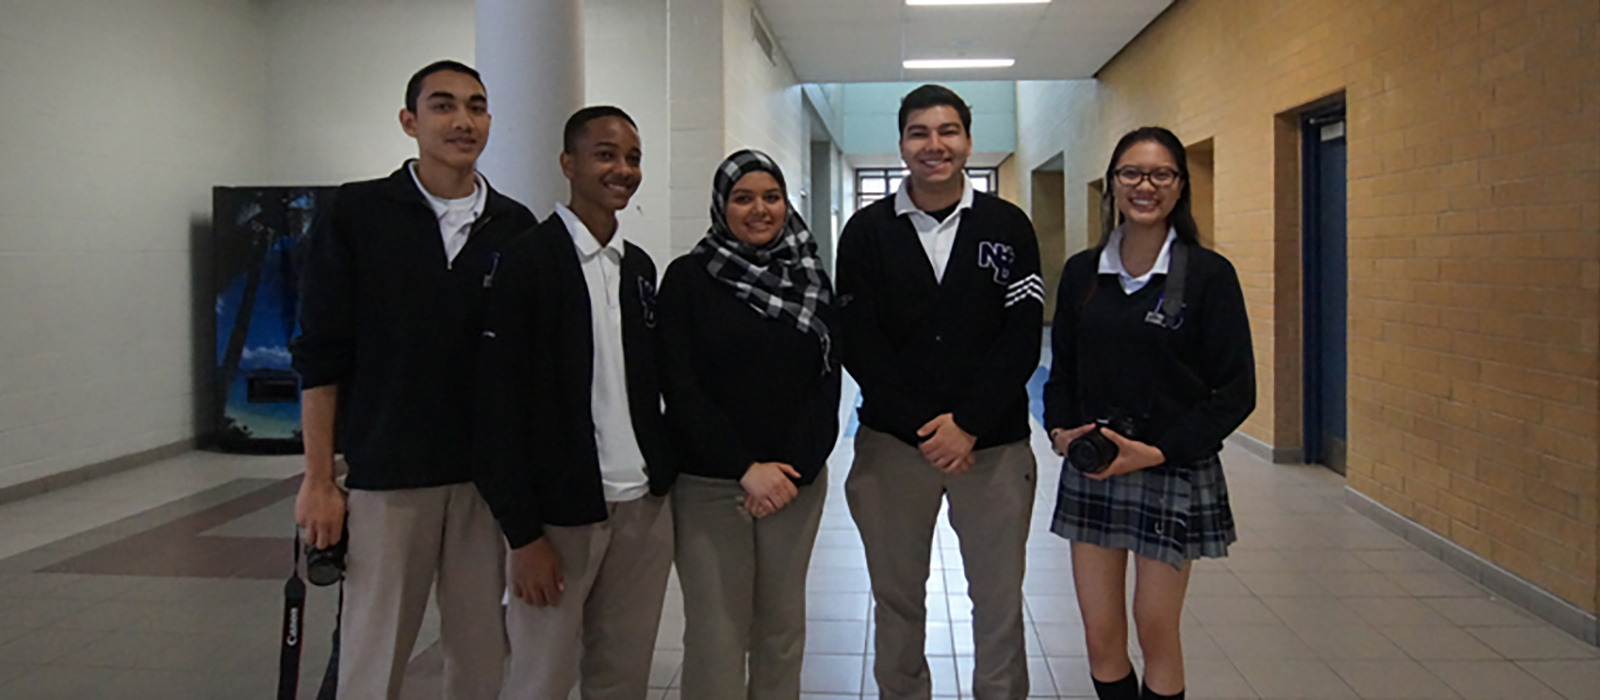 Male and female student leaders standing in a hallway